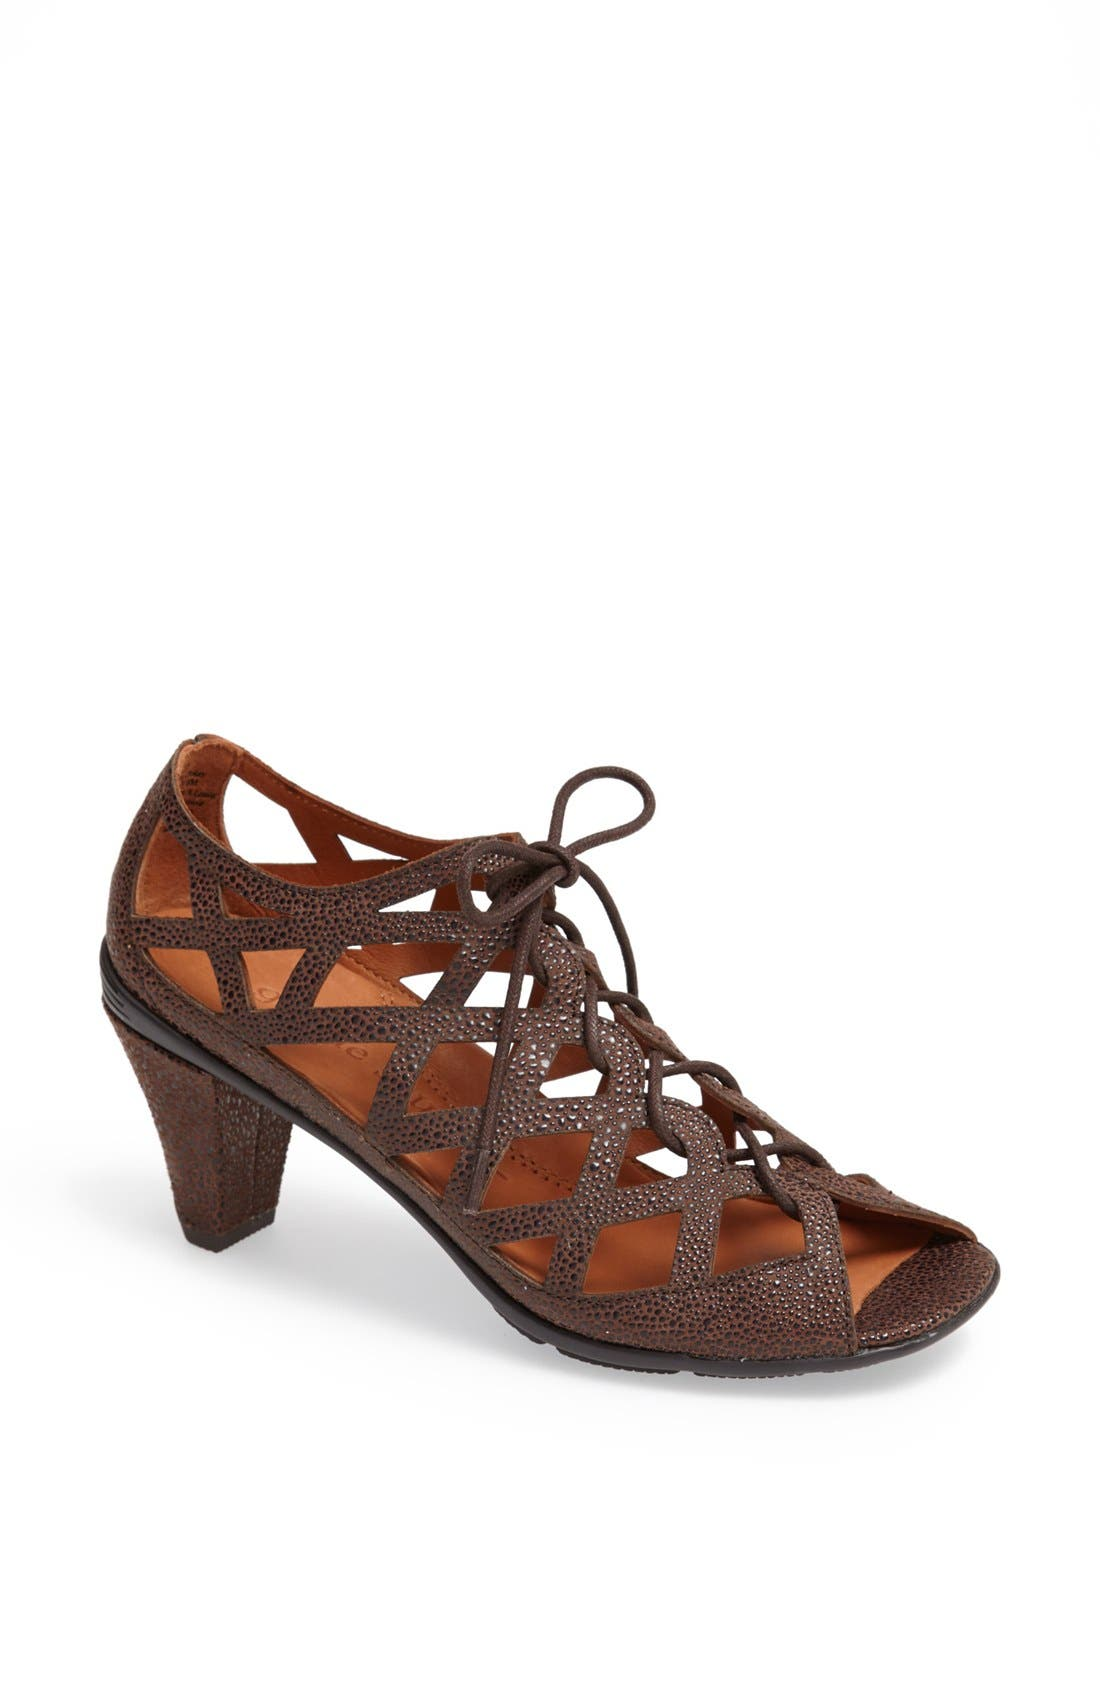 'Okey Dokey' Sandal,                         Main,                         color, Coffee